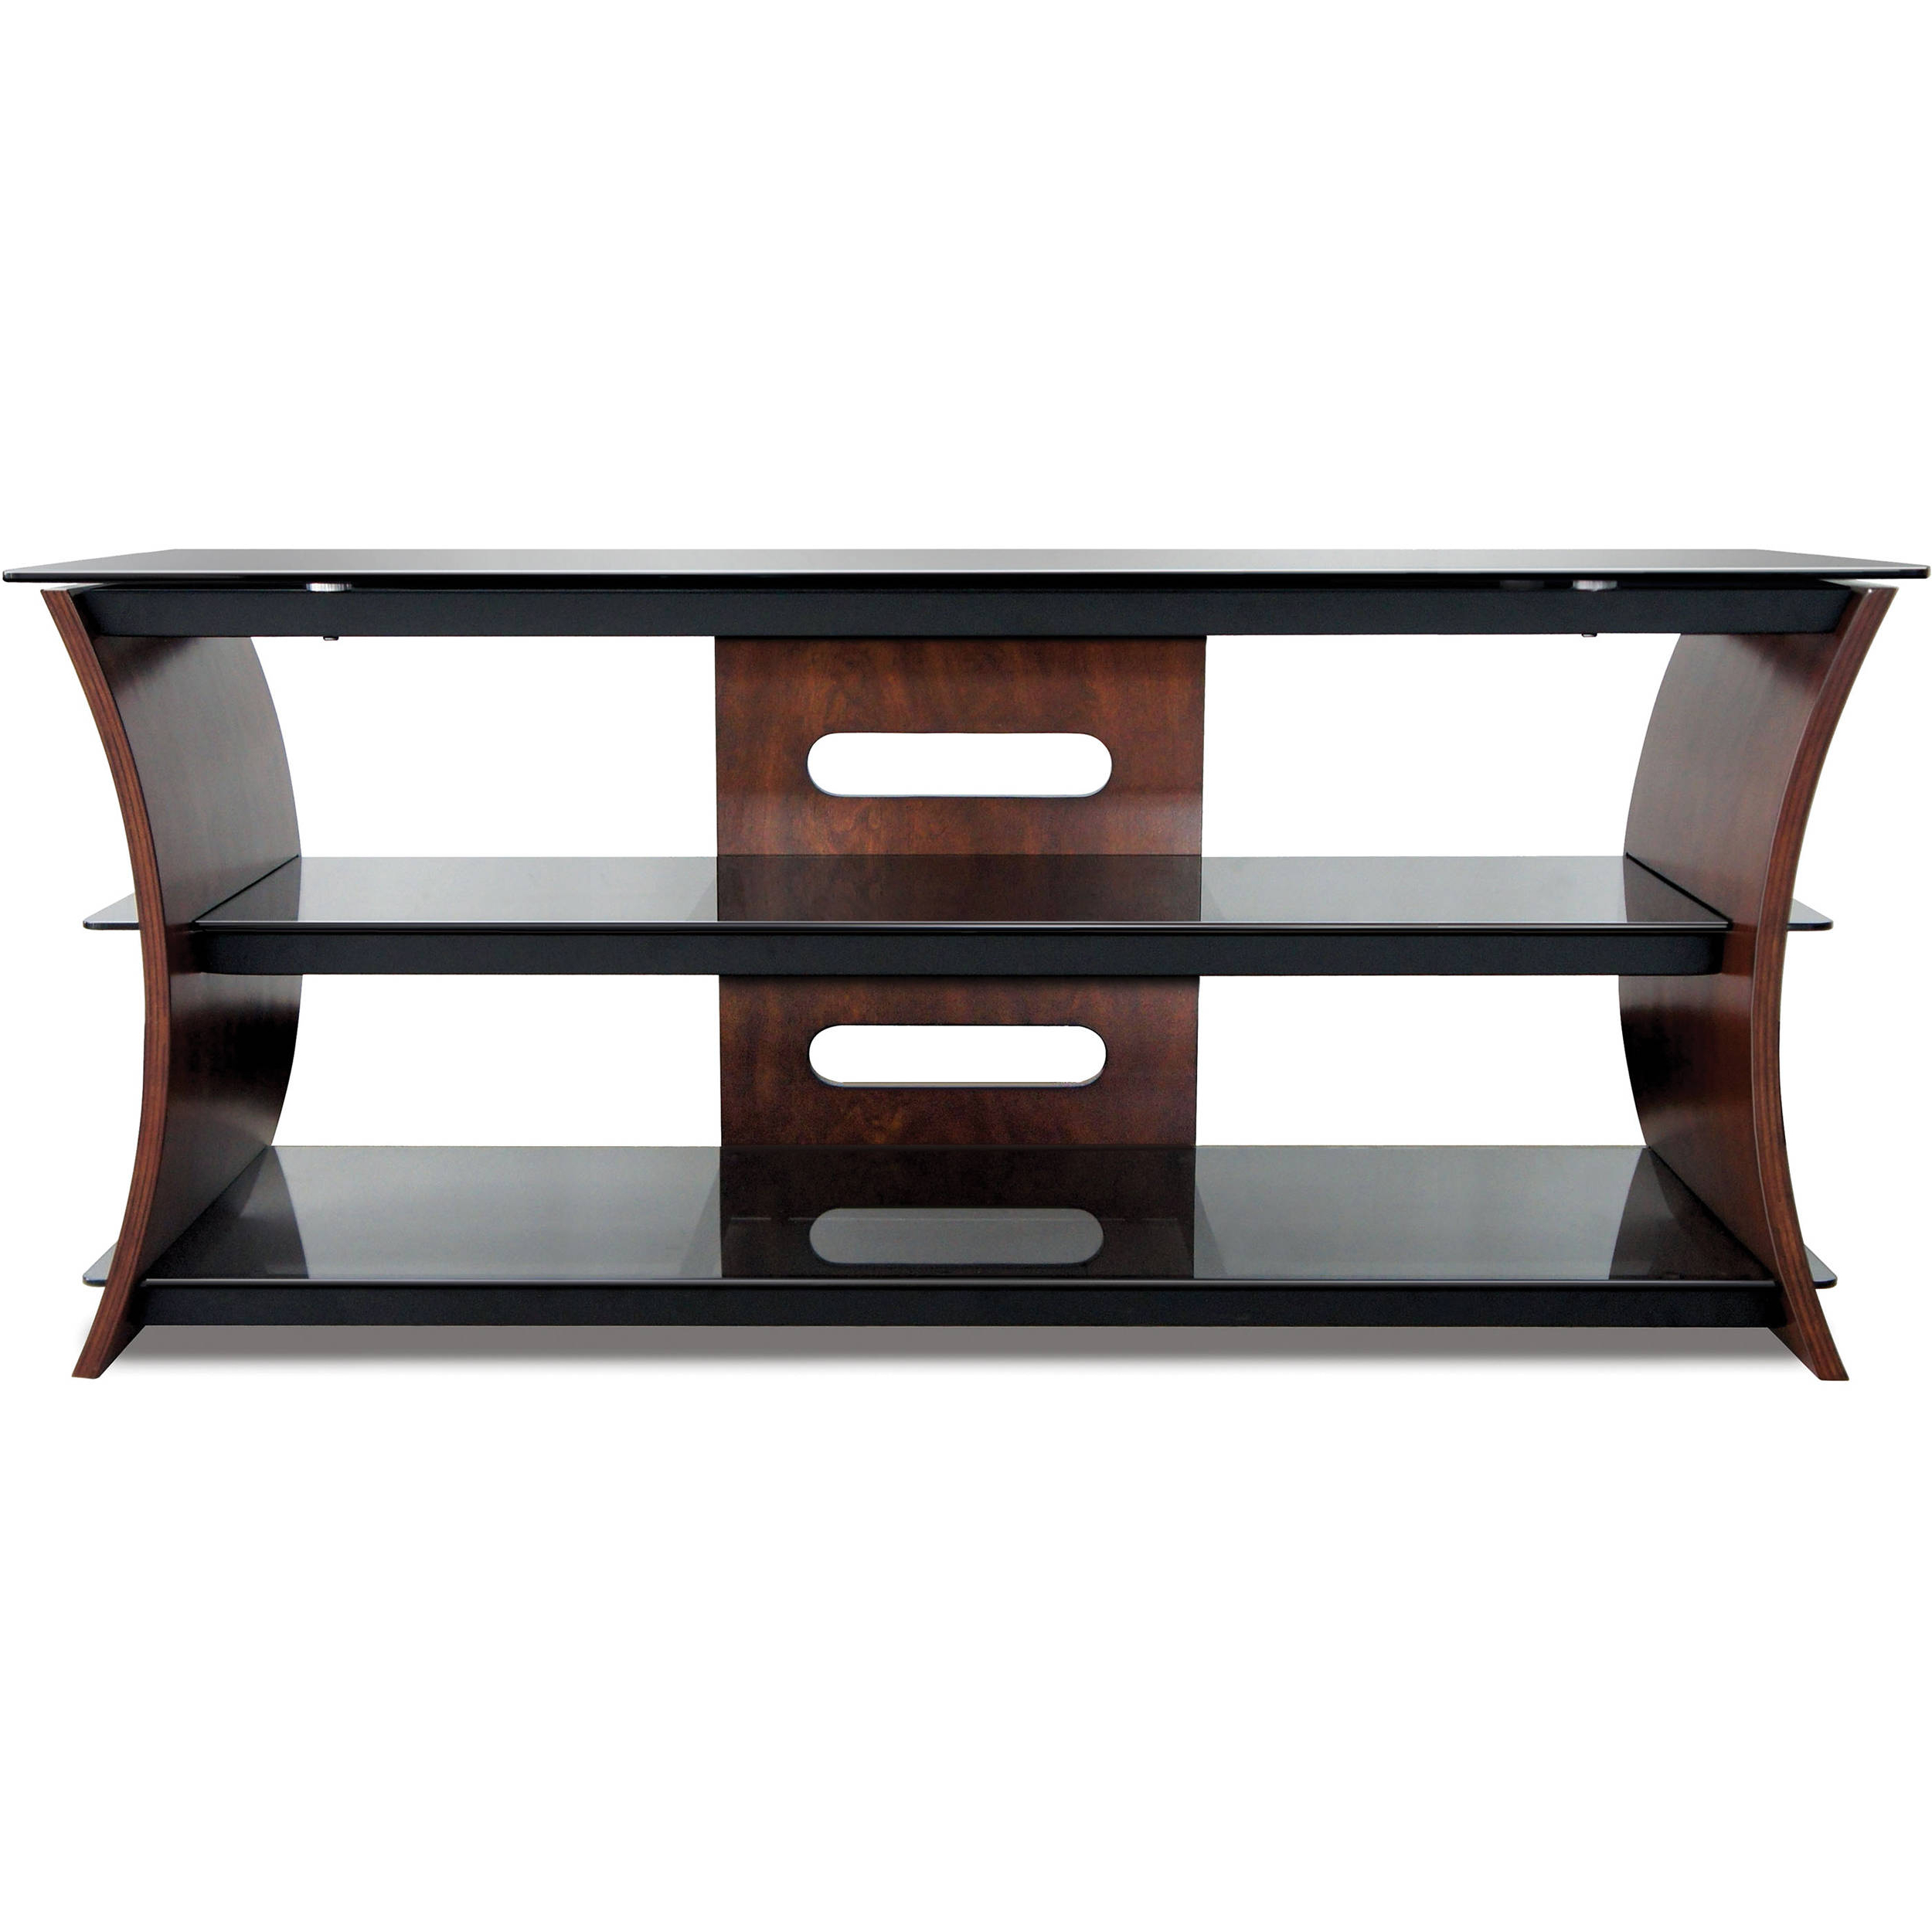 Fashionable Bell'o Cw356 Curved Wood Tv Stand Cw356 B&h Photo Video Intended For Wooden Tv Stands With Doors (View 6 of 20)